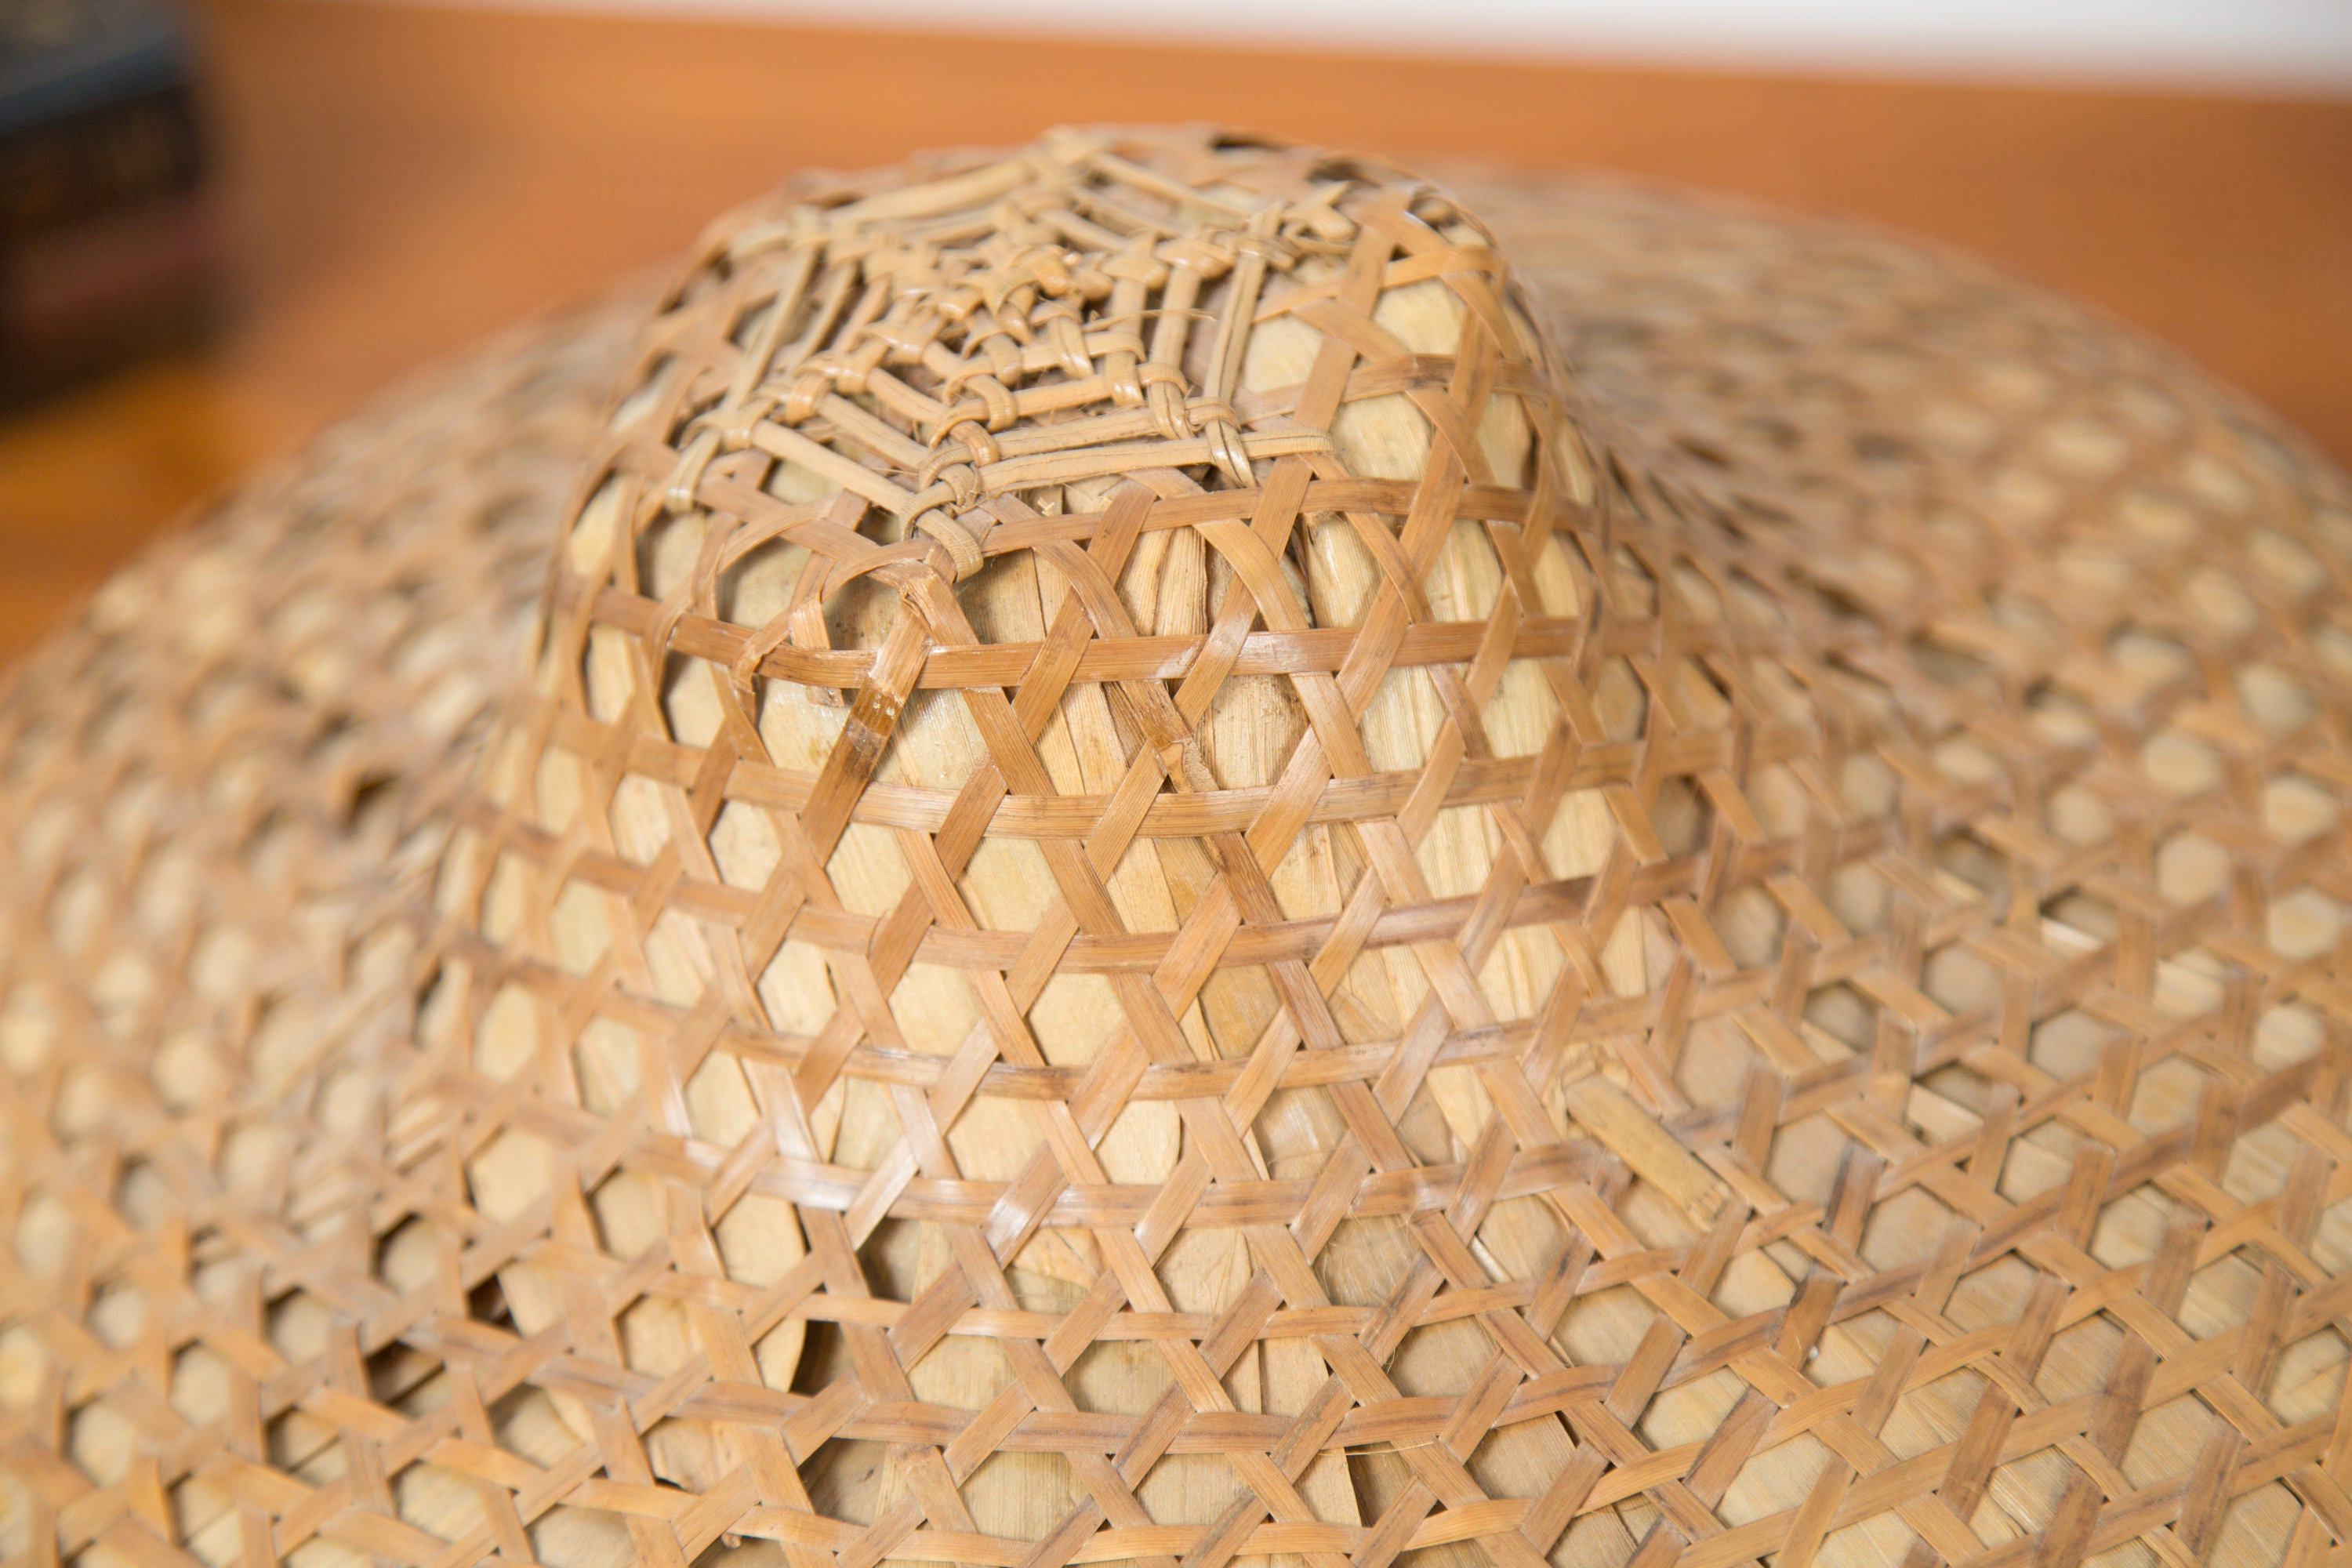 Antique Chinese Rice Hat - Rattan Wicker Asian Farmer\'s Hat with ...